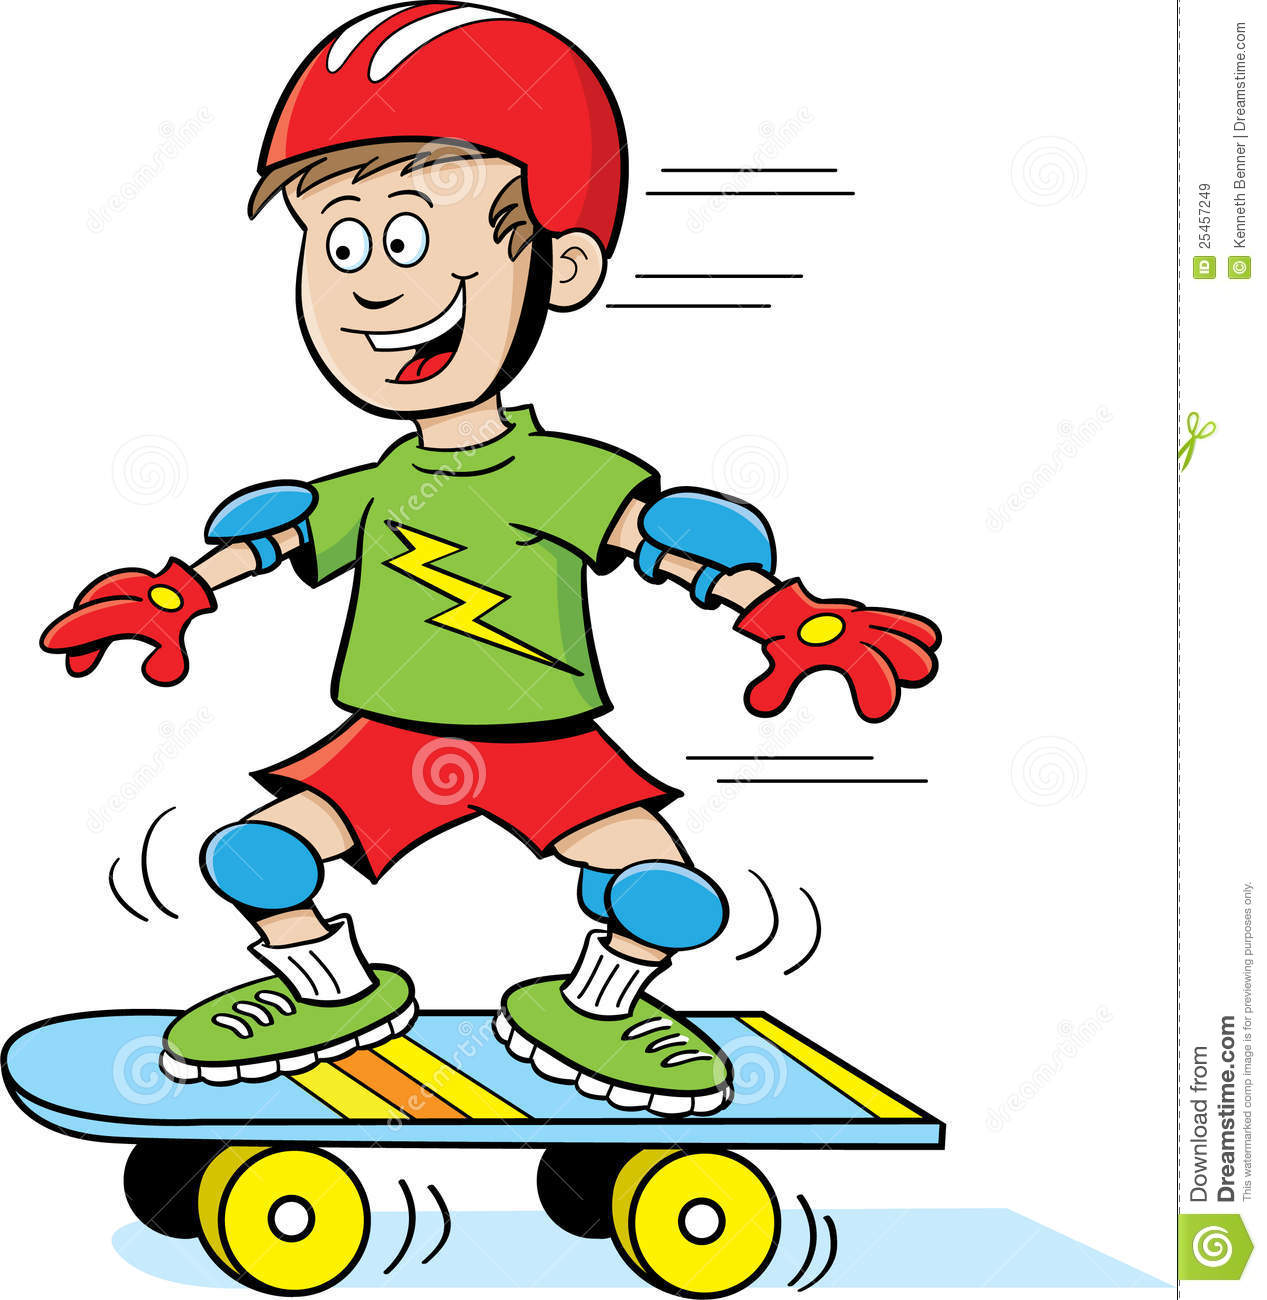 Boy On Skateboard Royalty Free Stock Images - Image: 25457249